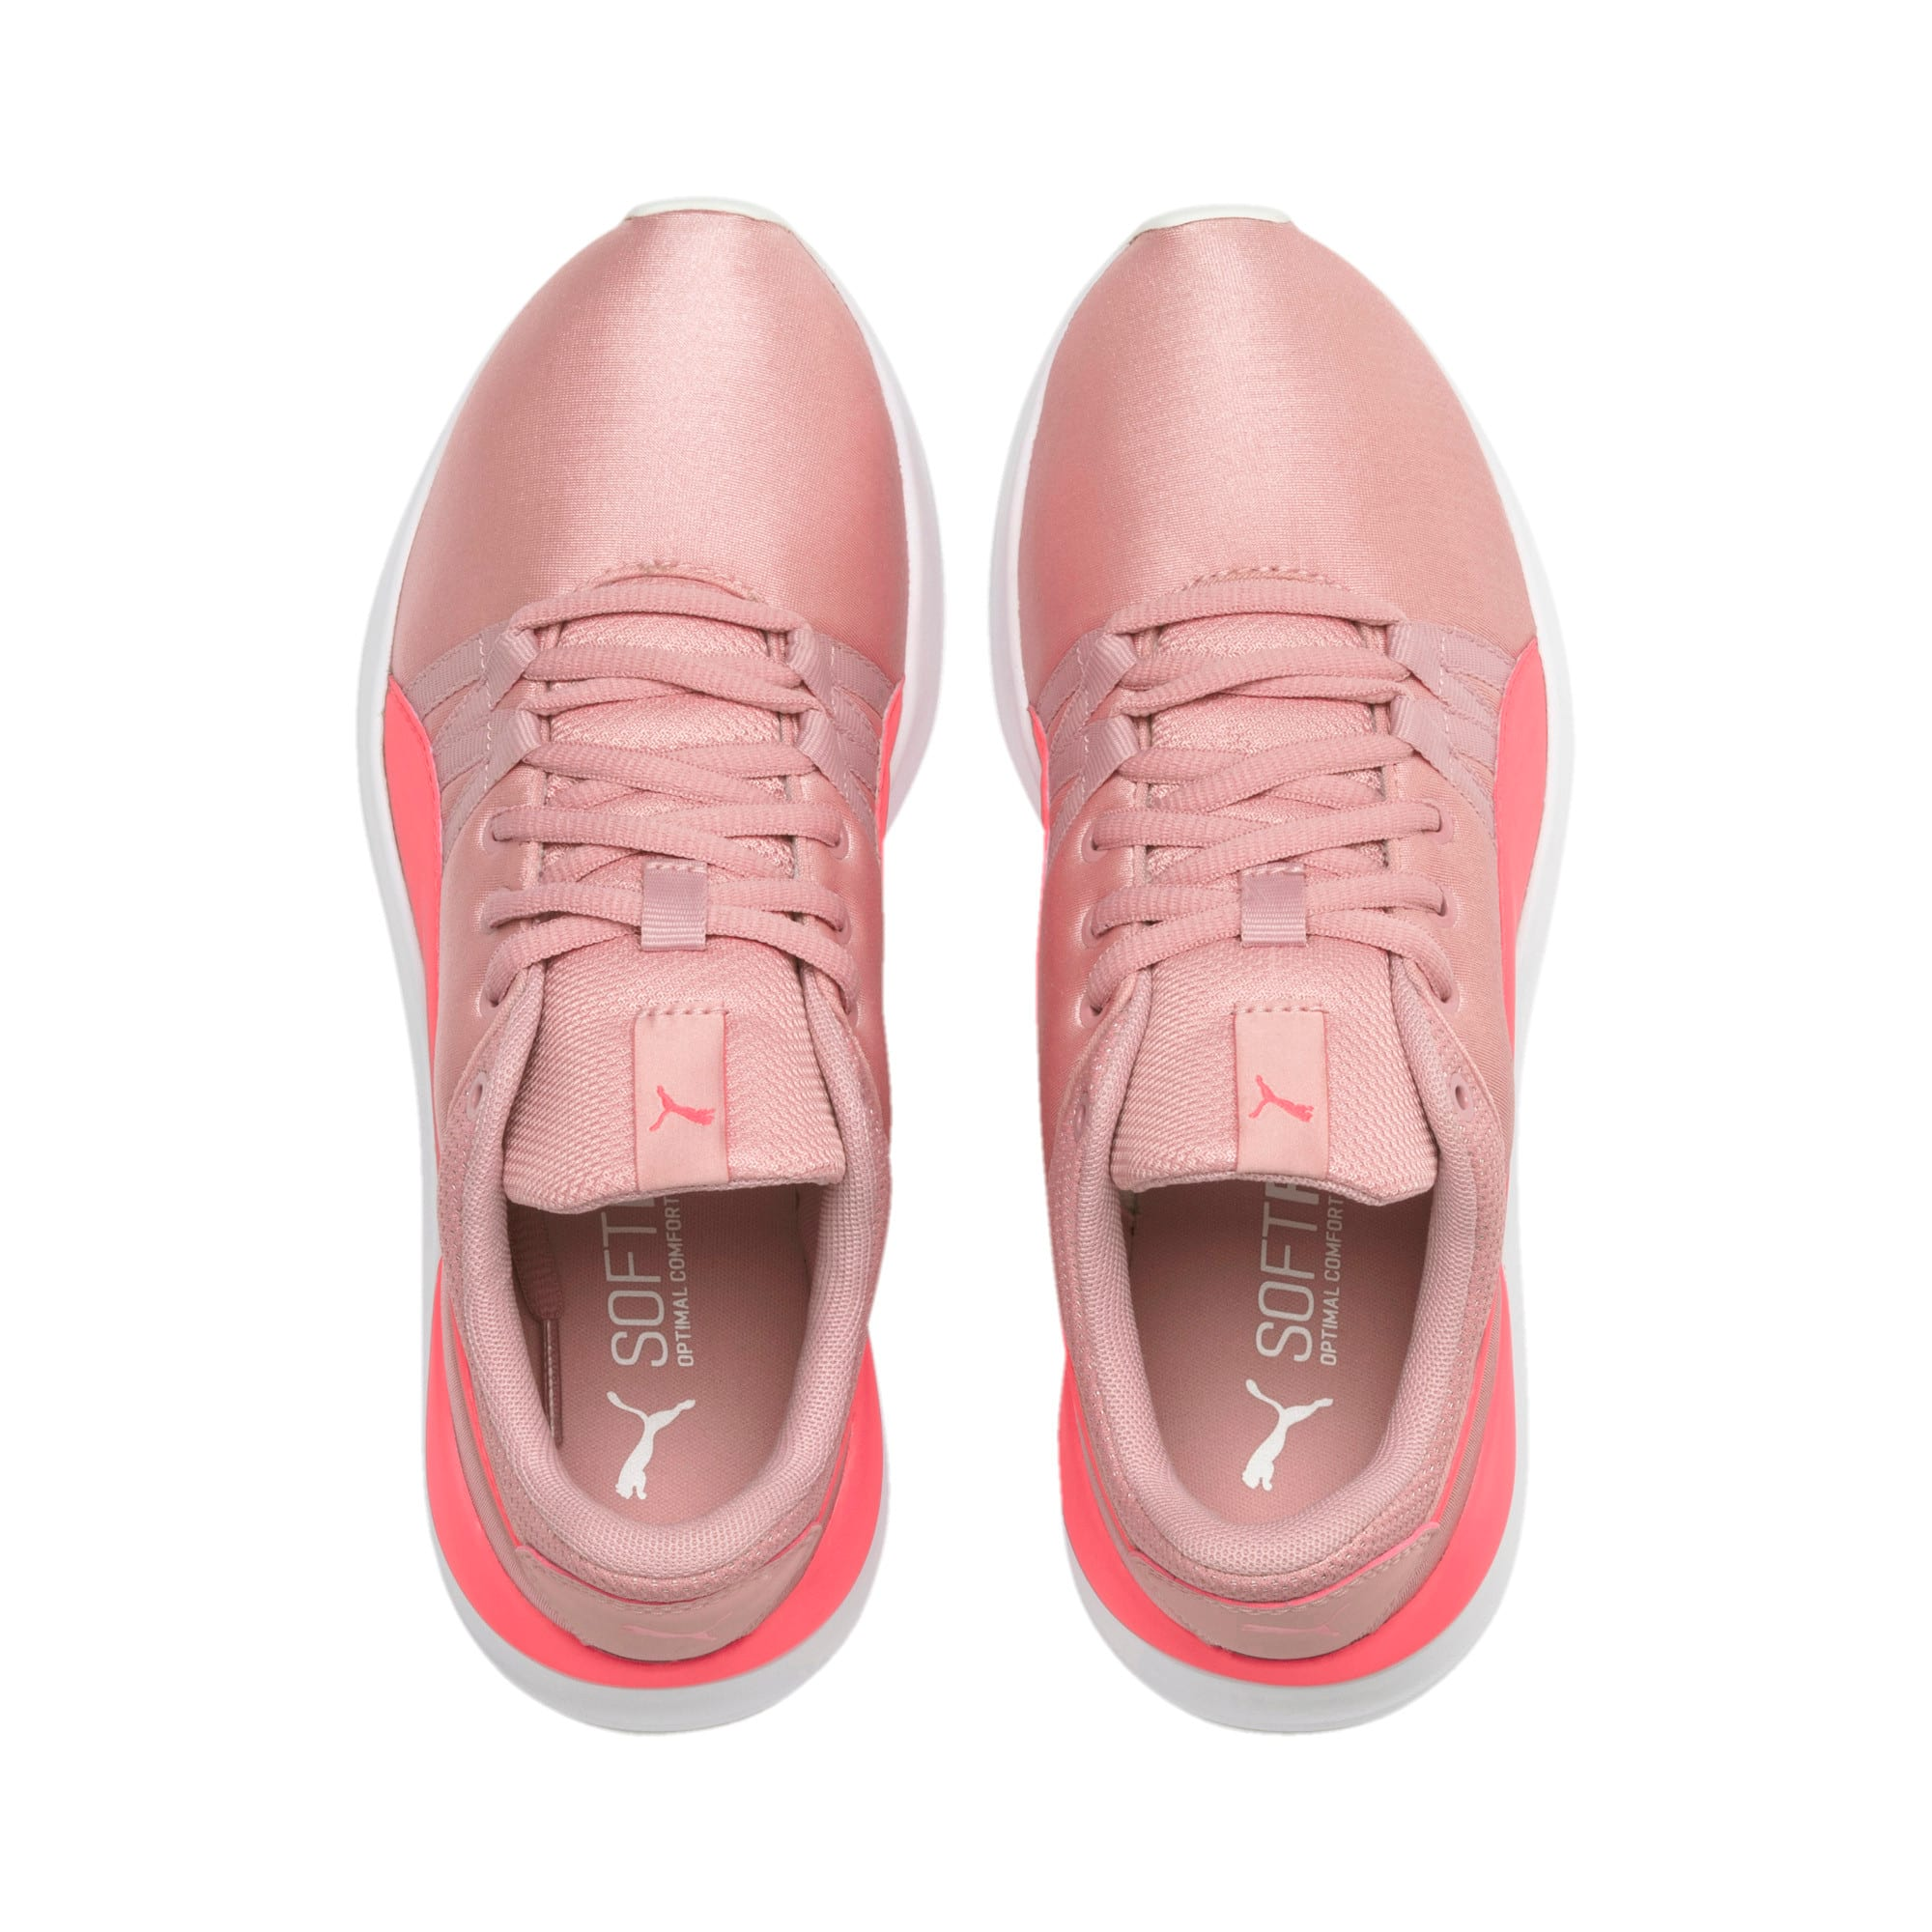 Thumbnail 2 of Adela Satin Girls' Trainers, Bridal Rose-Calypso Coral, medium-IND